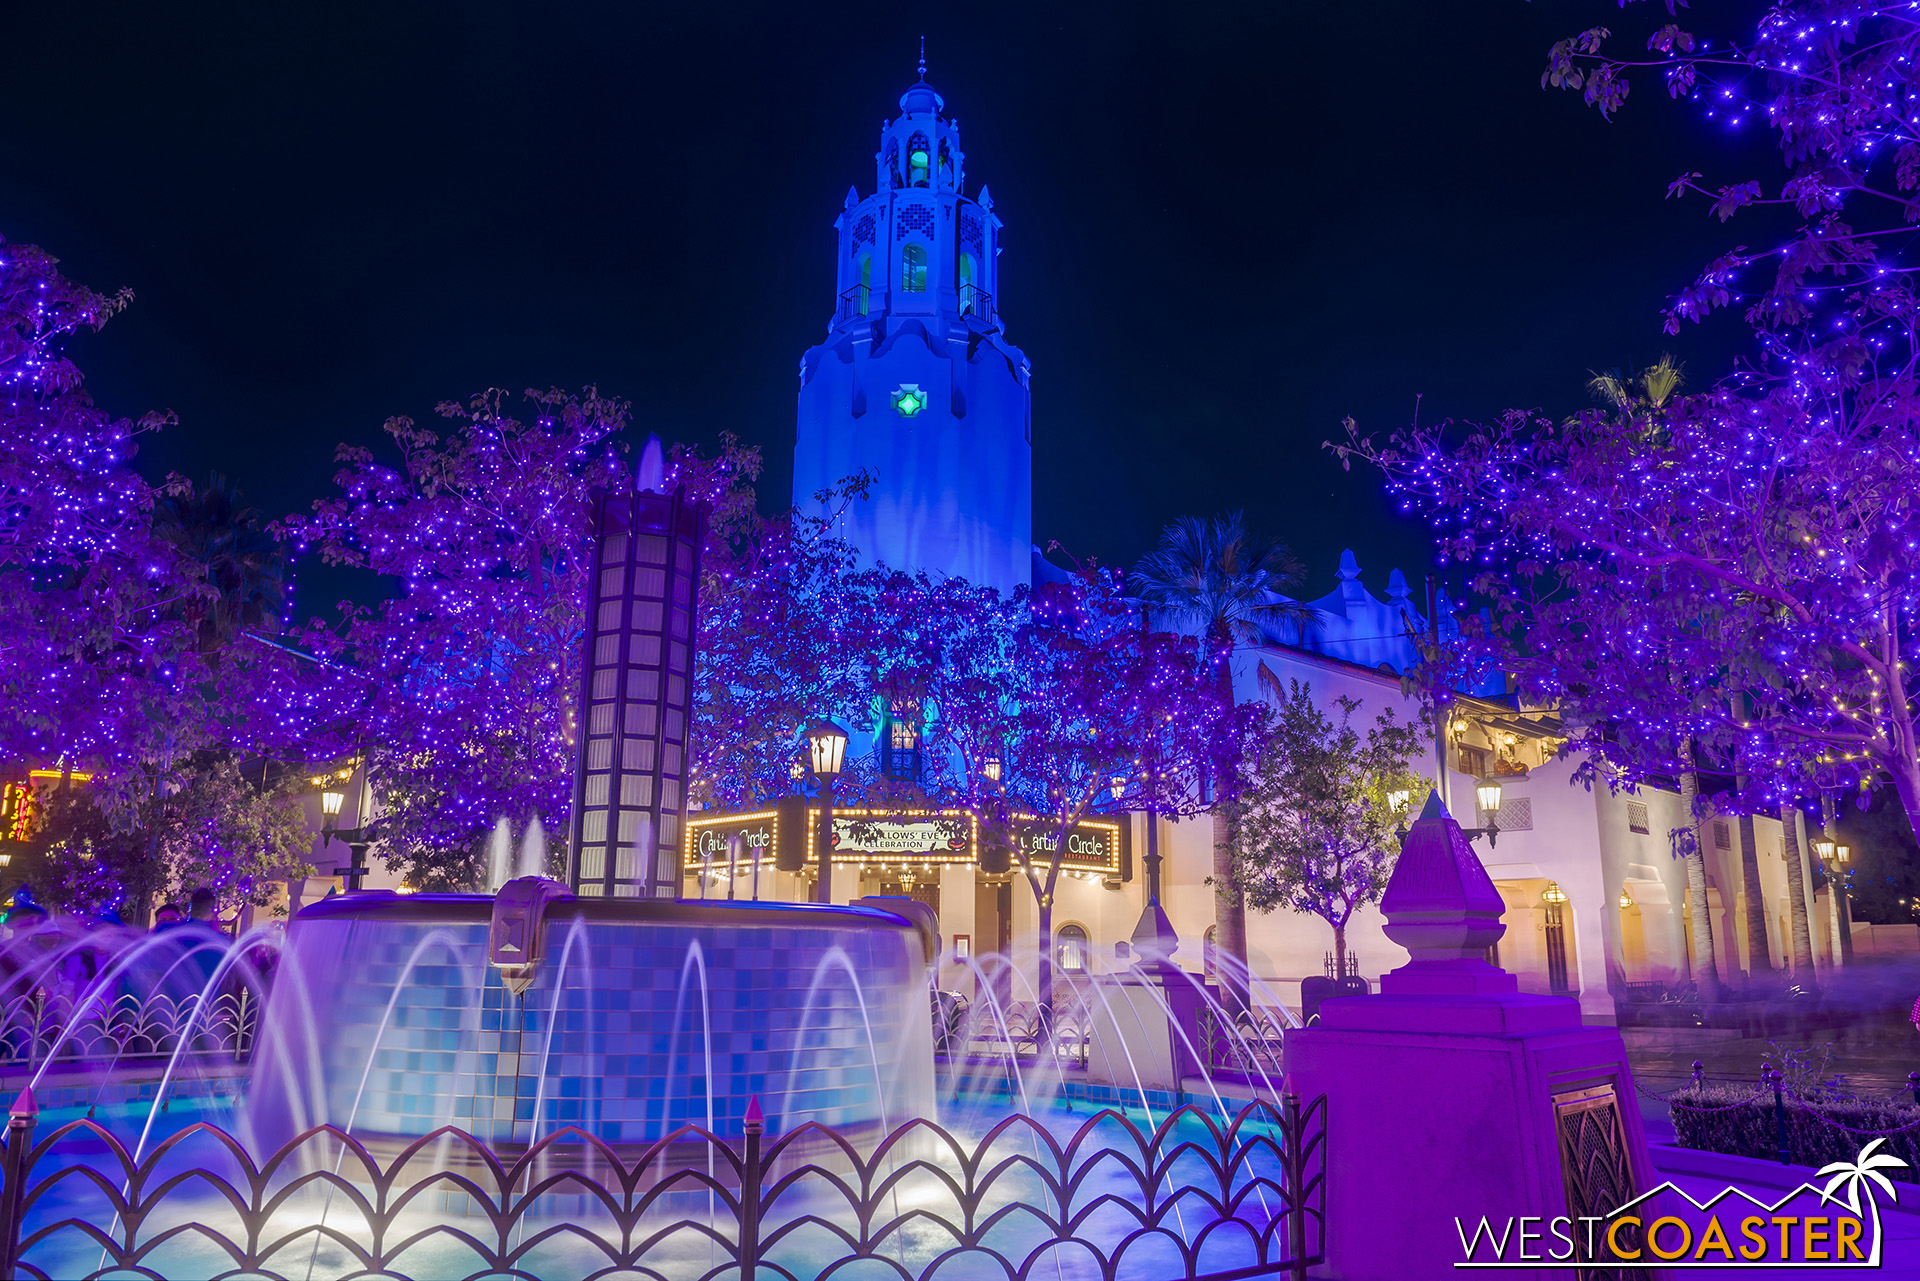 He's filled Carthay Circle and Buena Vista Street with as much odd lighting as possible.